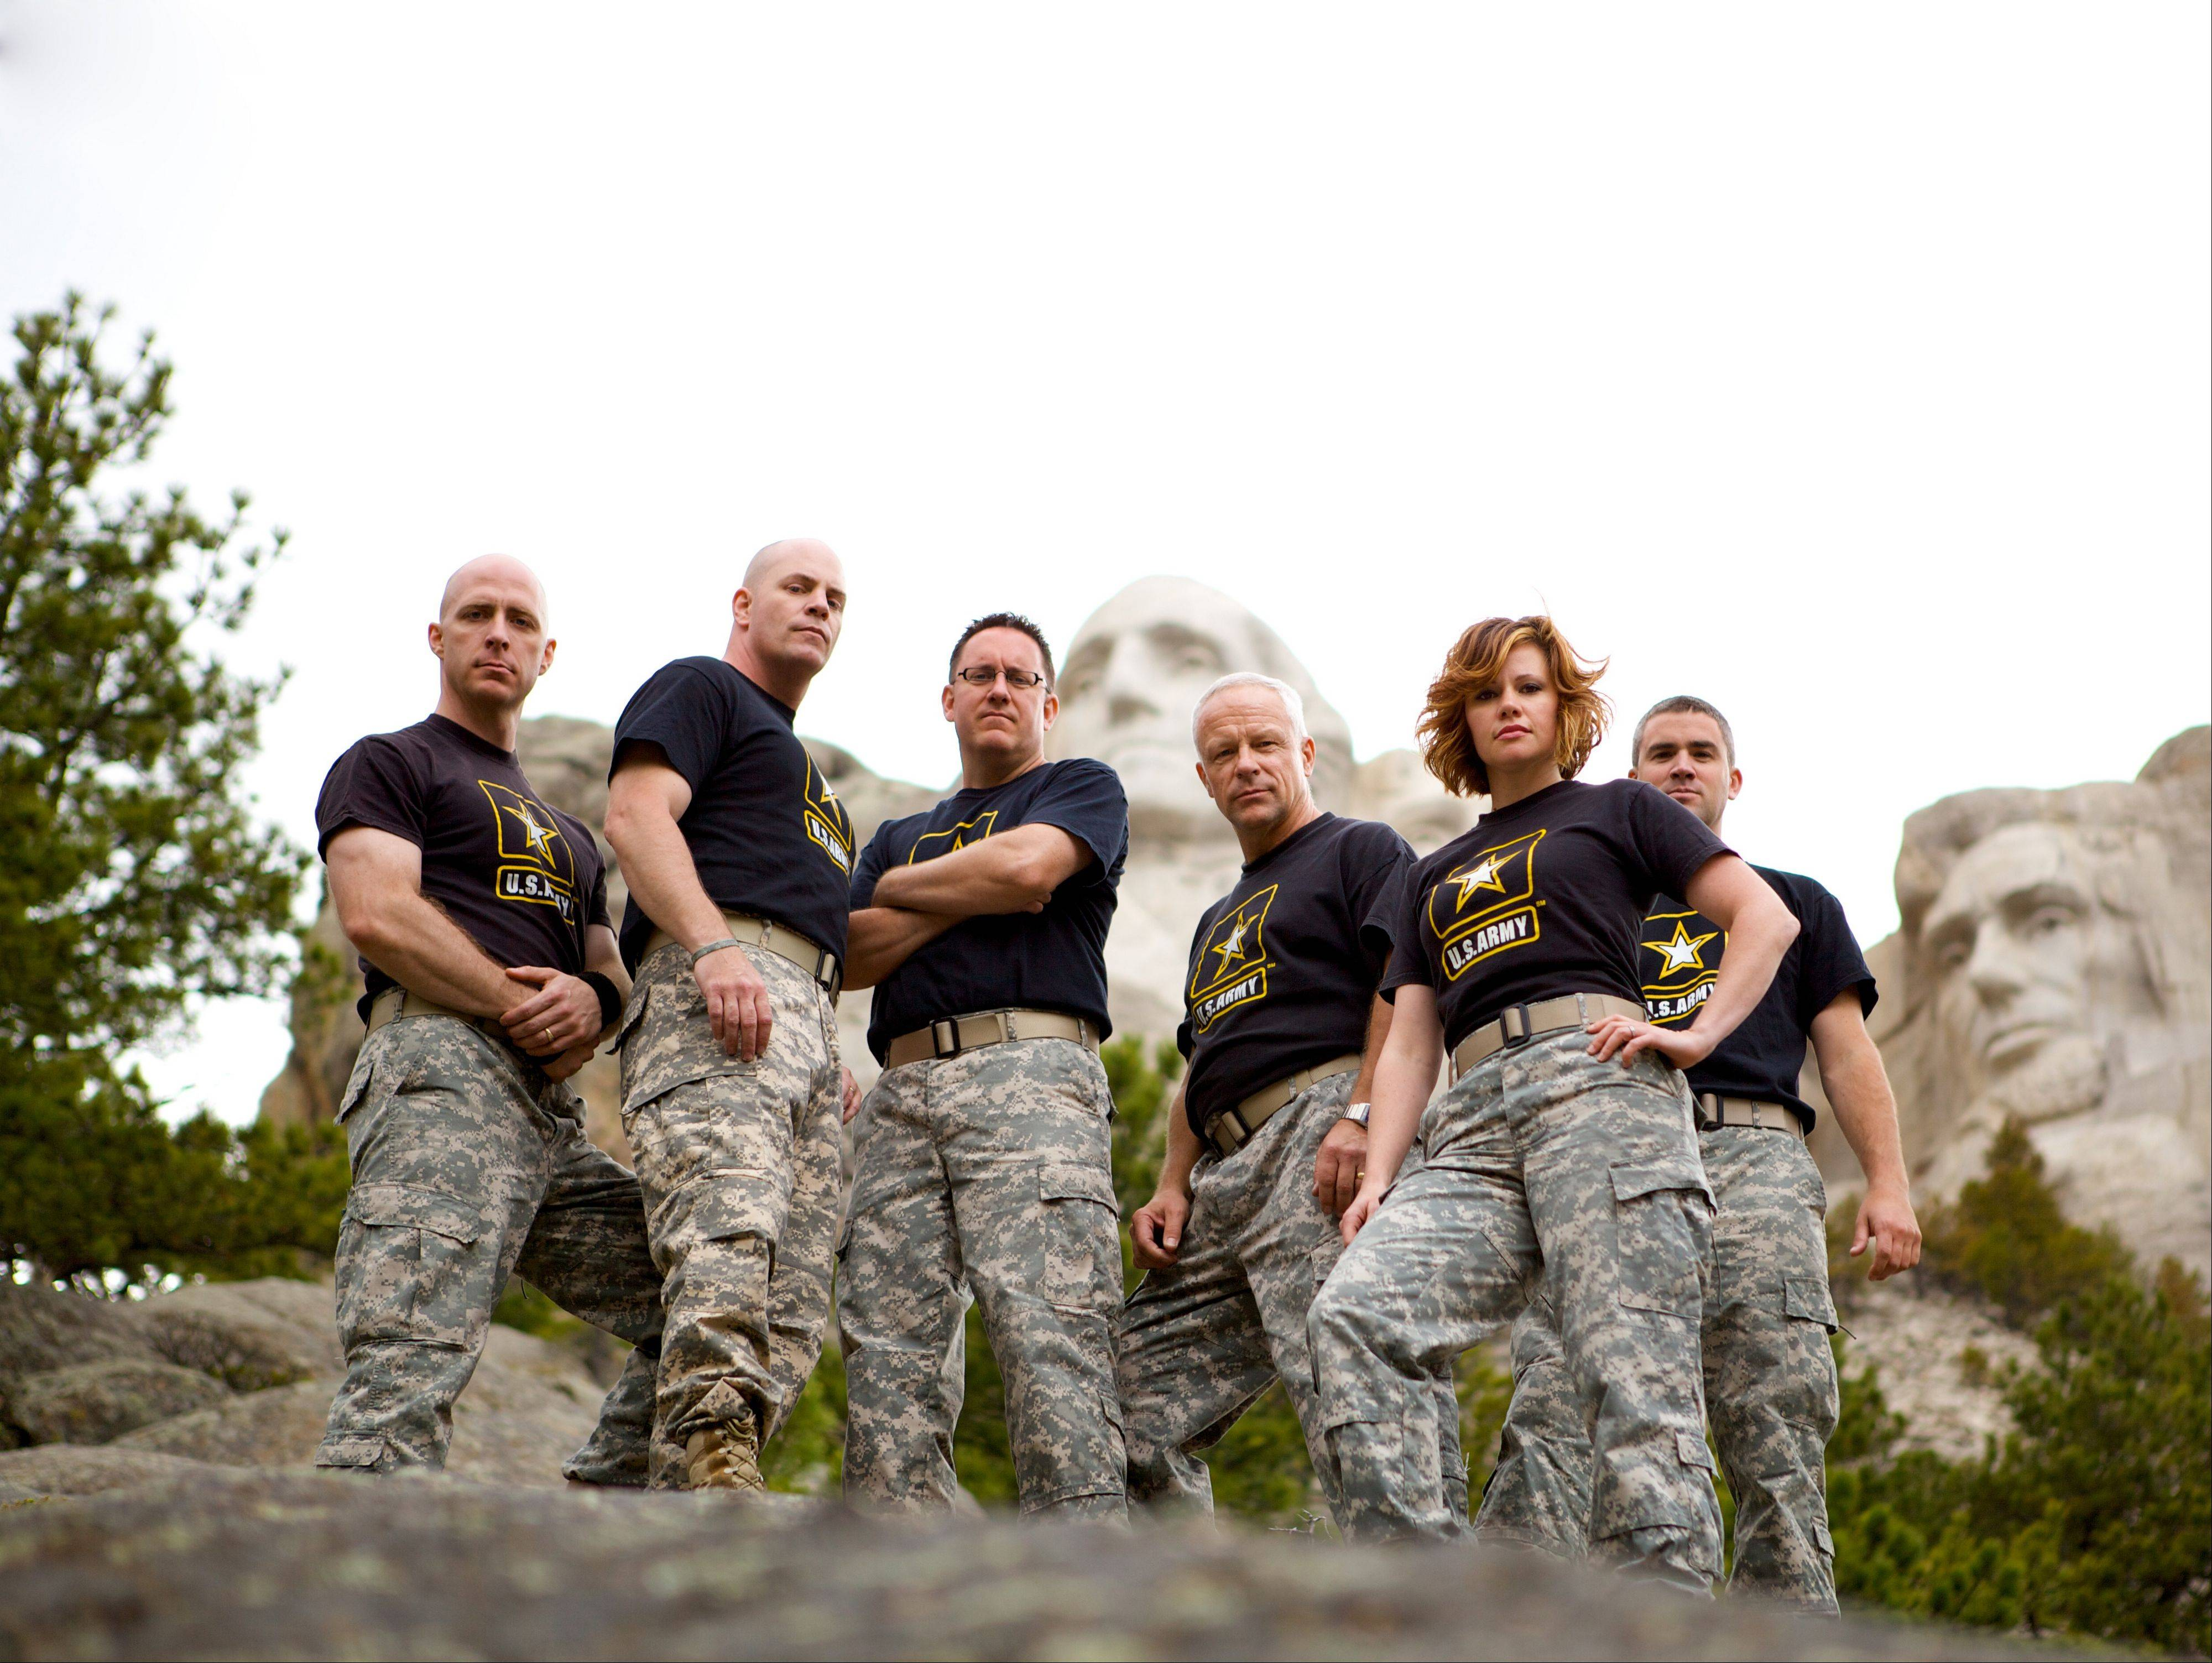 The U.S. Army Field Band's six-piece ensemble The Volunteers perform a free concert of rock and country music at the Arcada Theatre in St. Charles on Thursday, June 28.